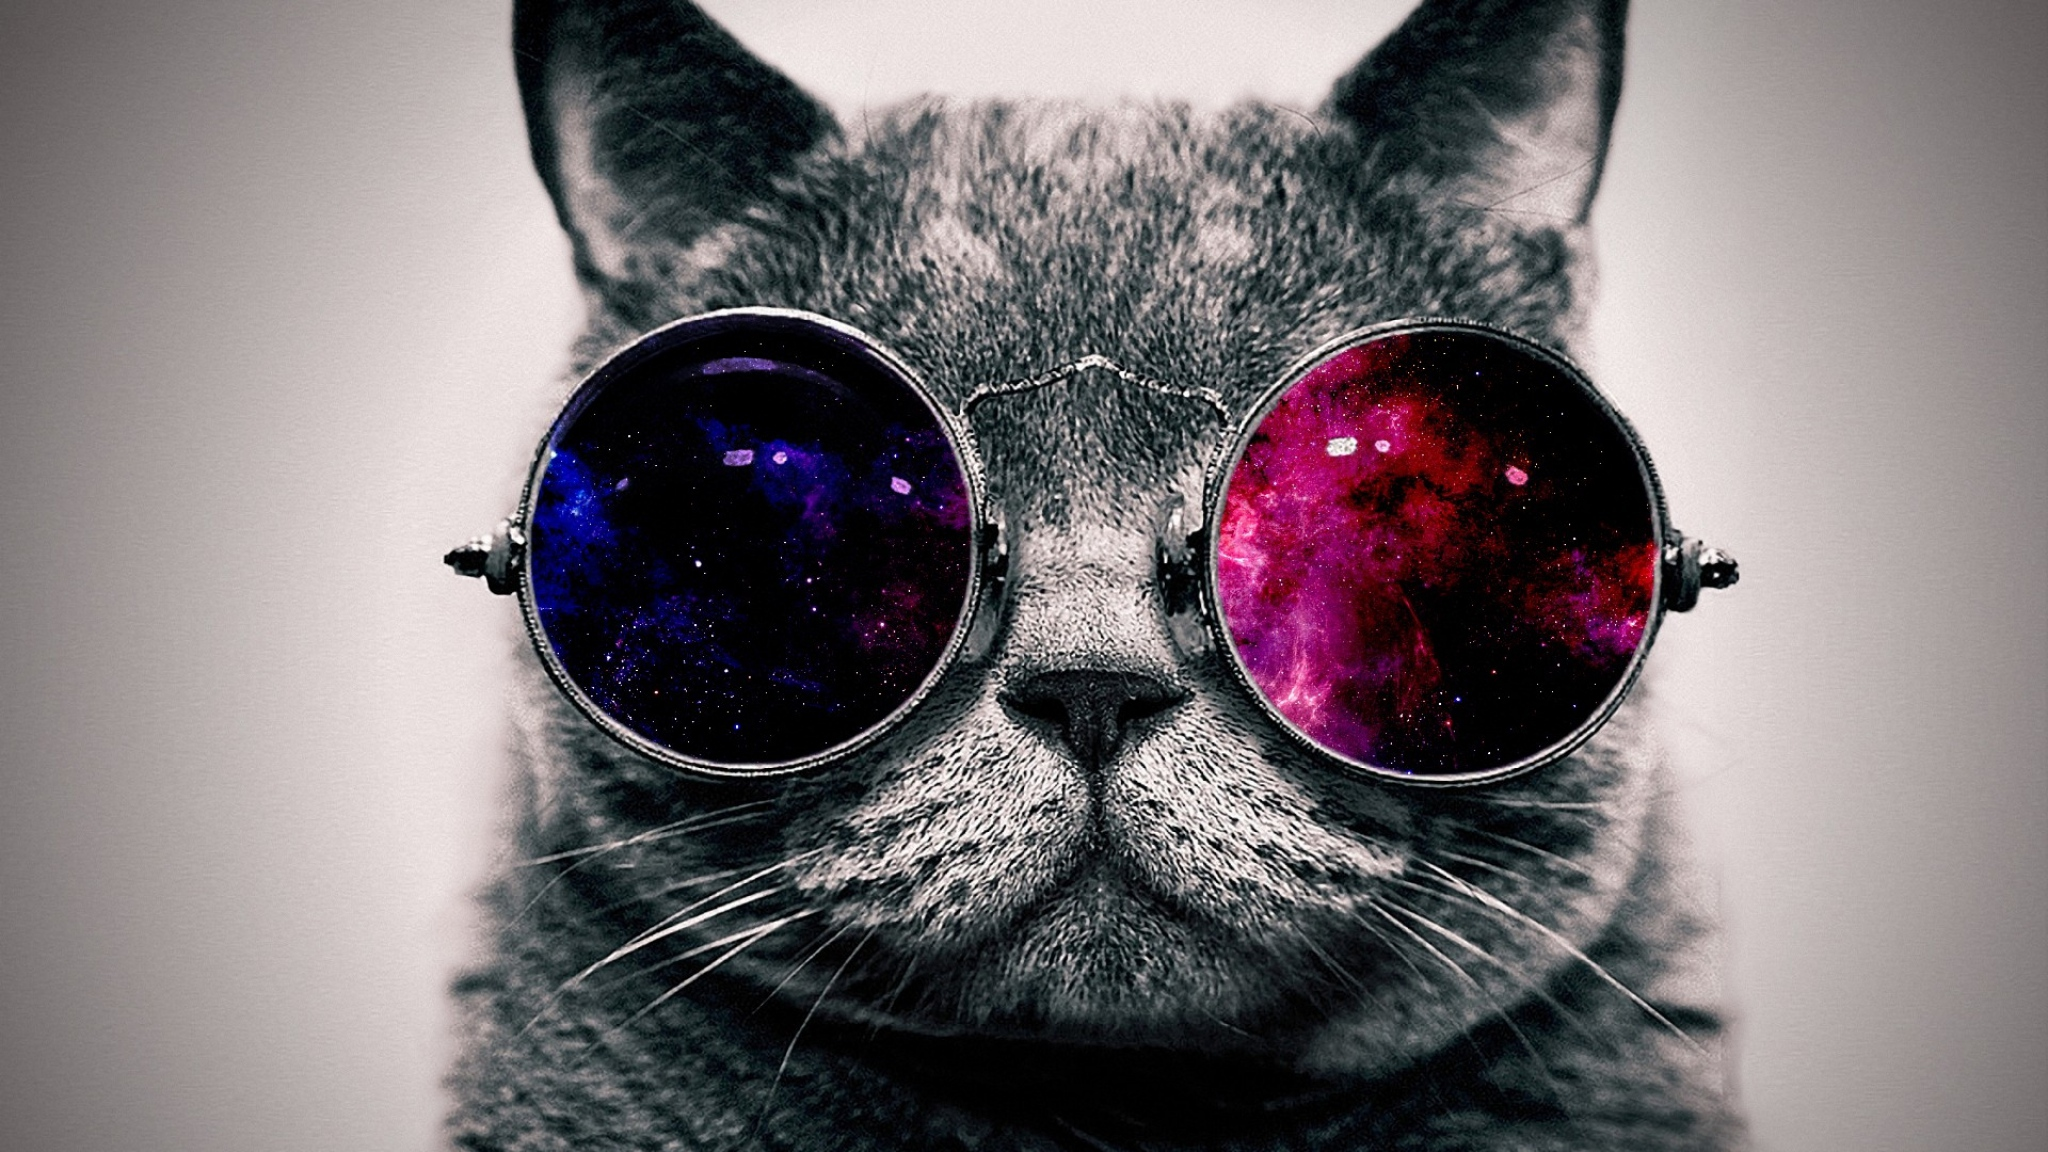 Wallpaper 2048x1152 Cat Face Glasses Thick HD HD Background 2048x1152